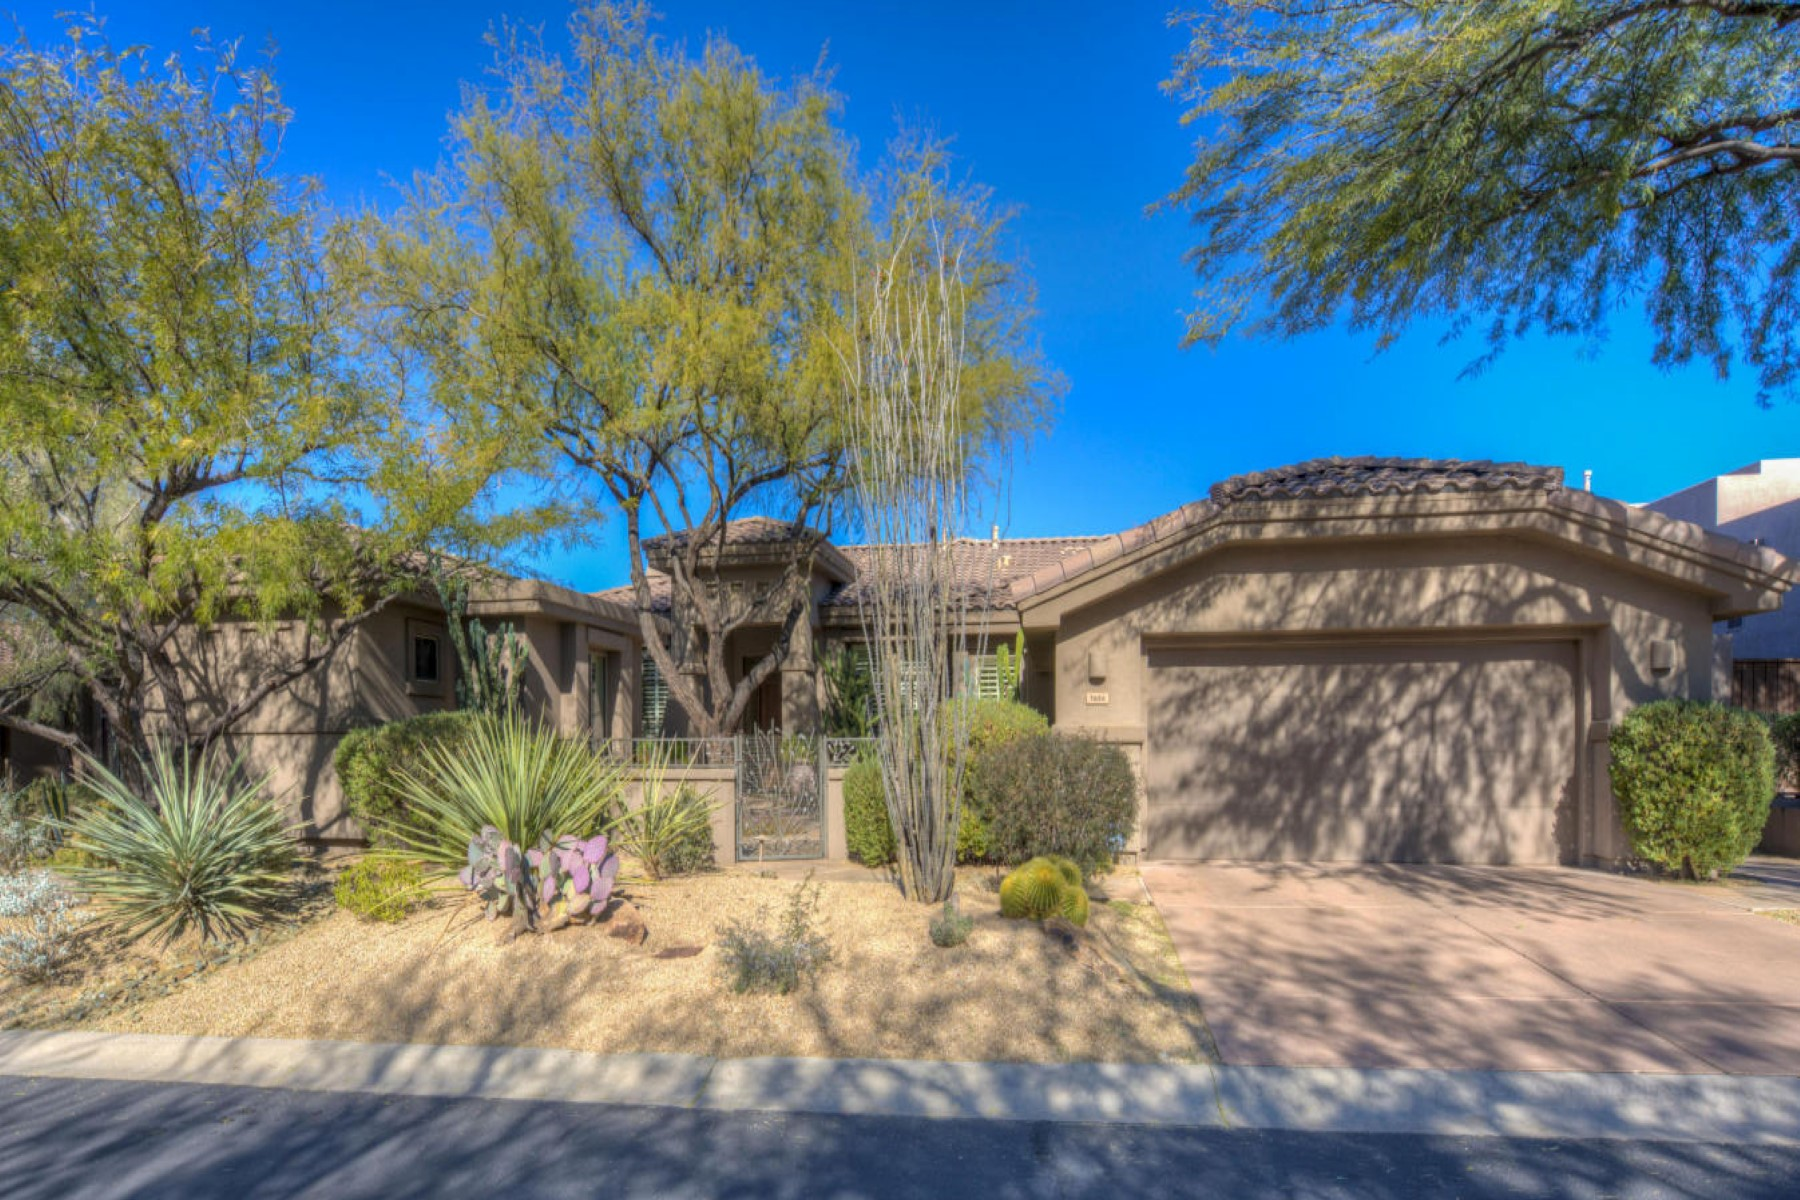 獨棟家庭住宅 為 出售 在 Beautiful and immaculate home in guard gated community 7654 E Shooting Star Way Scottsdale, 亞利桑那州, 85266 美國